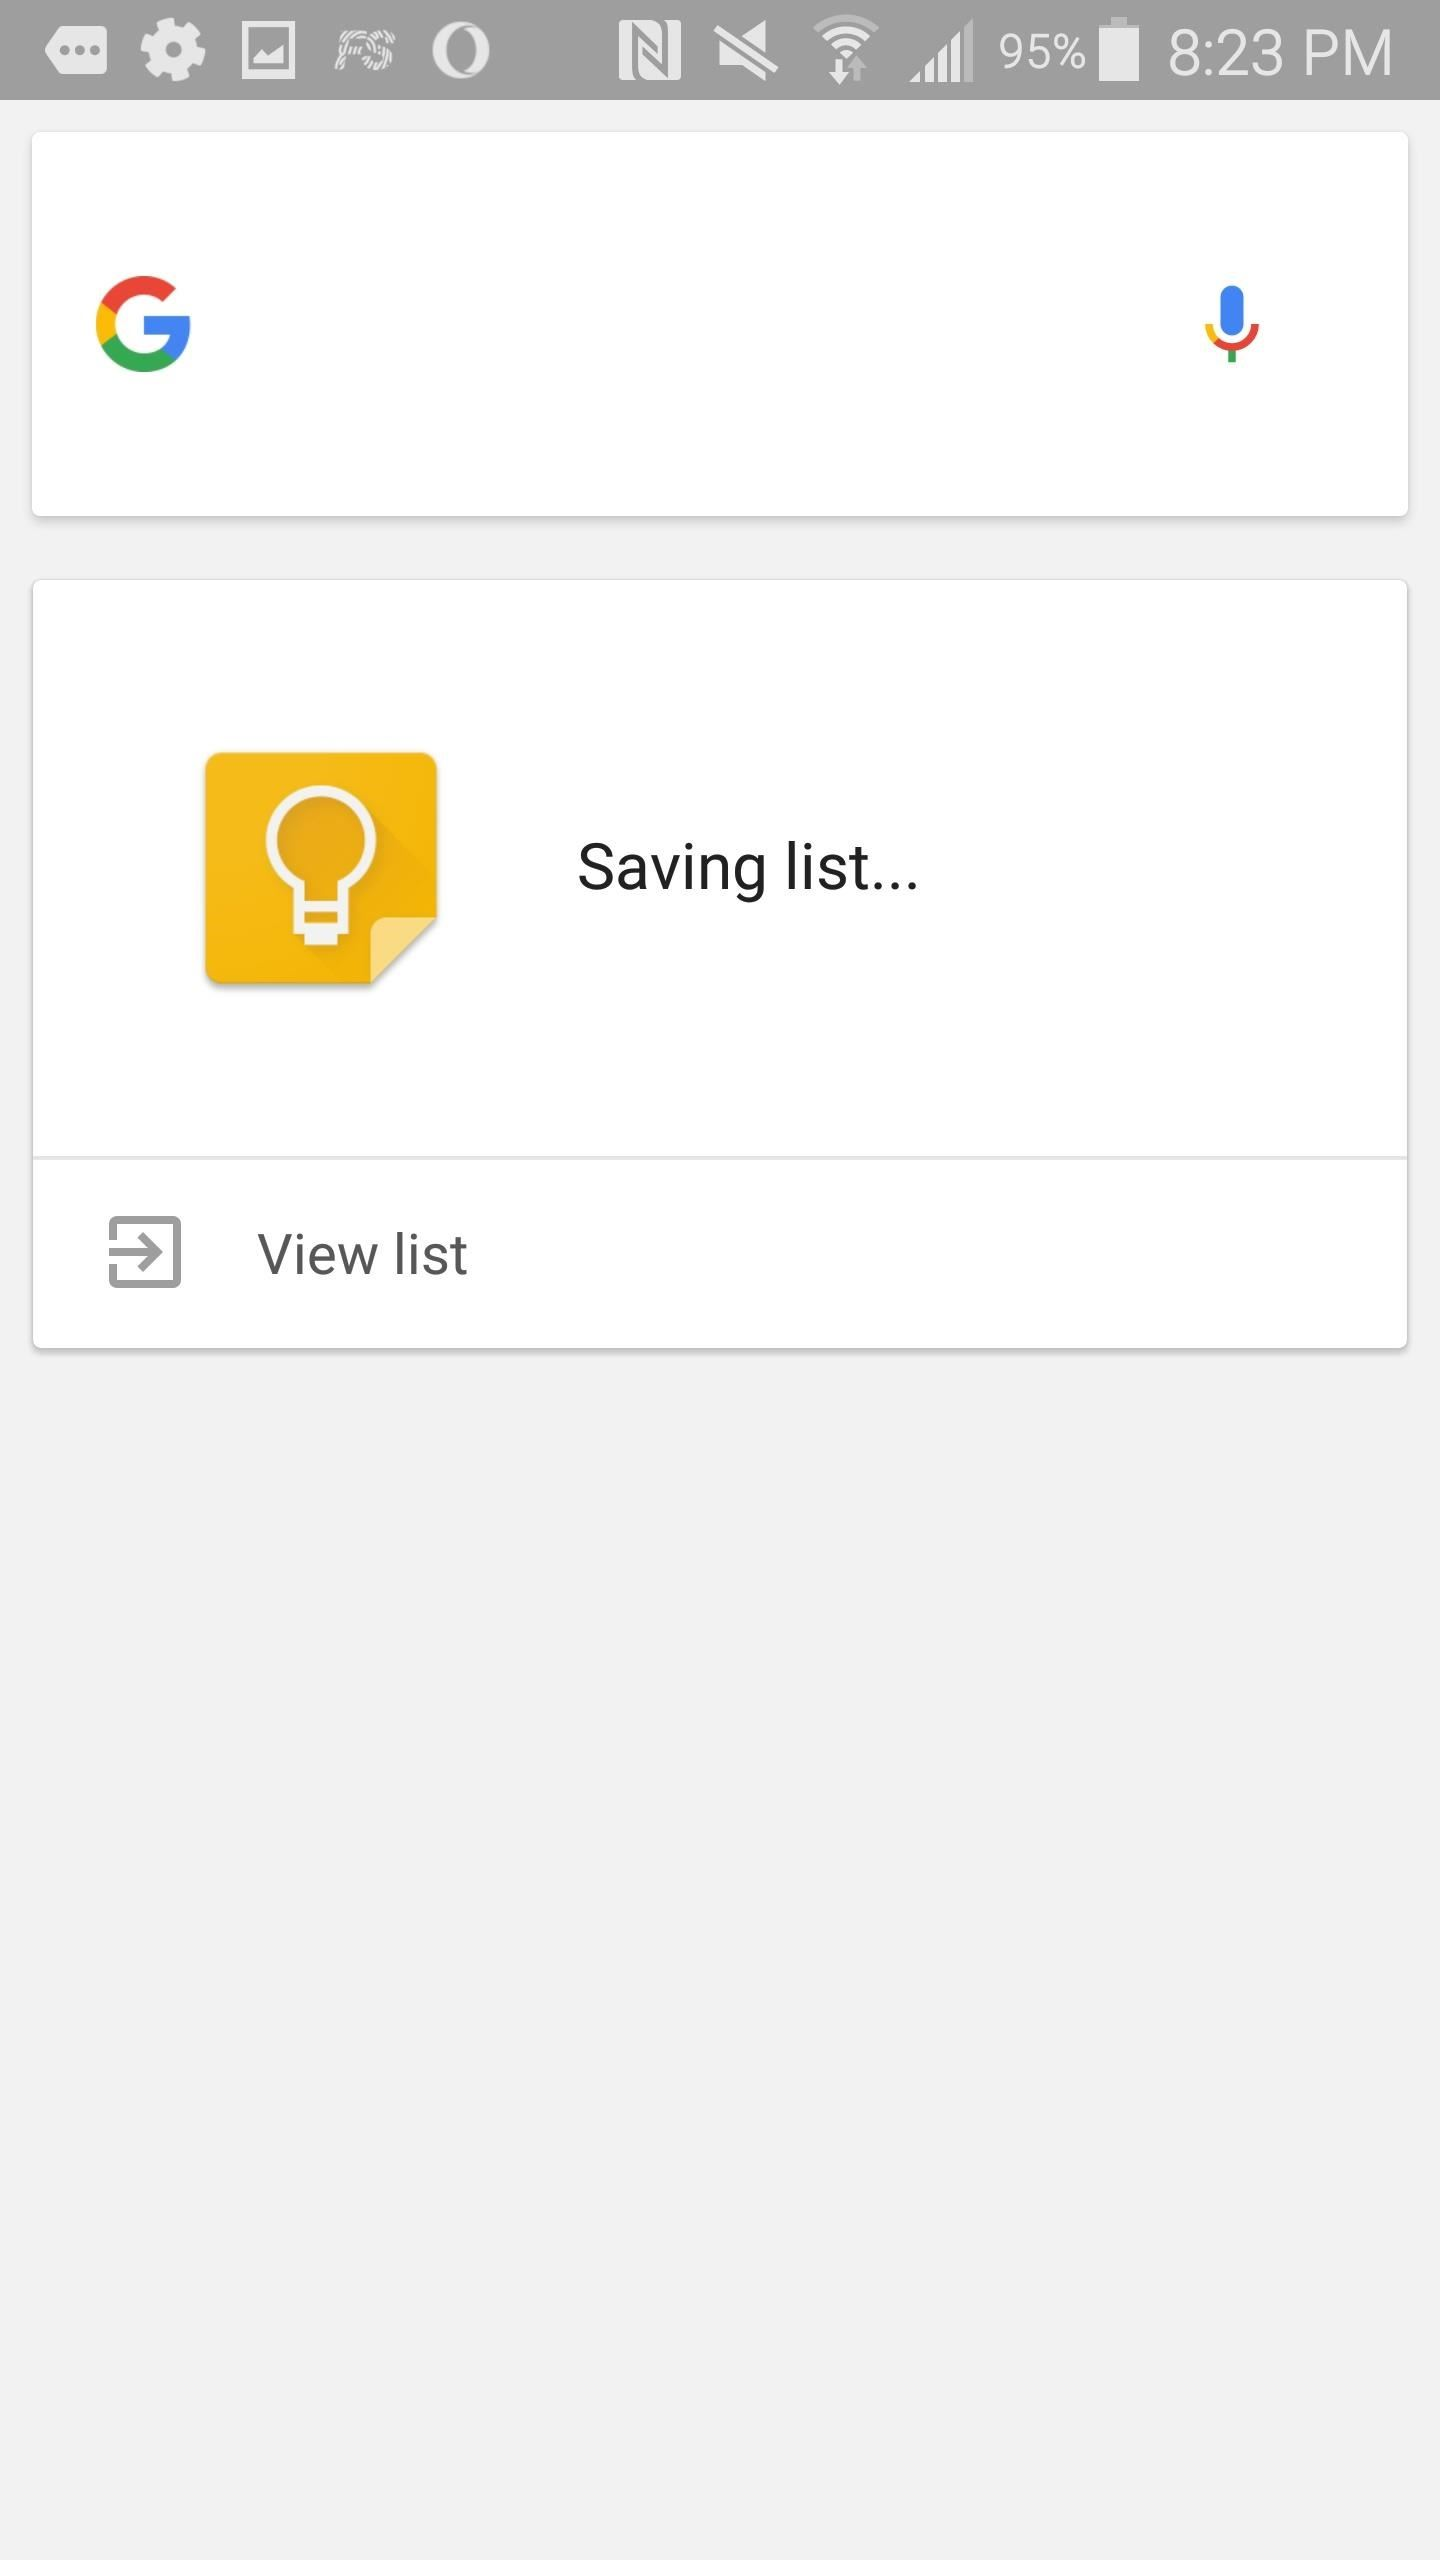 Voice Commands Let You Create & Edit Google Keep Lists Super Fast